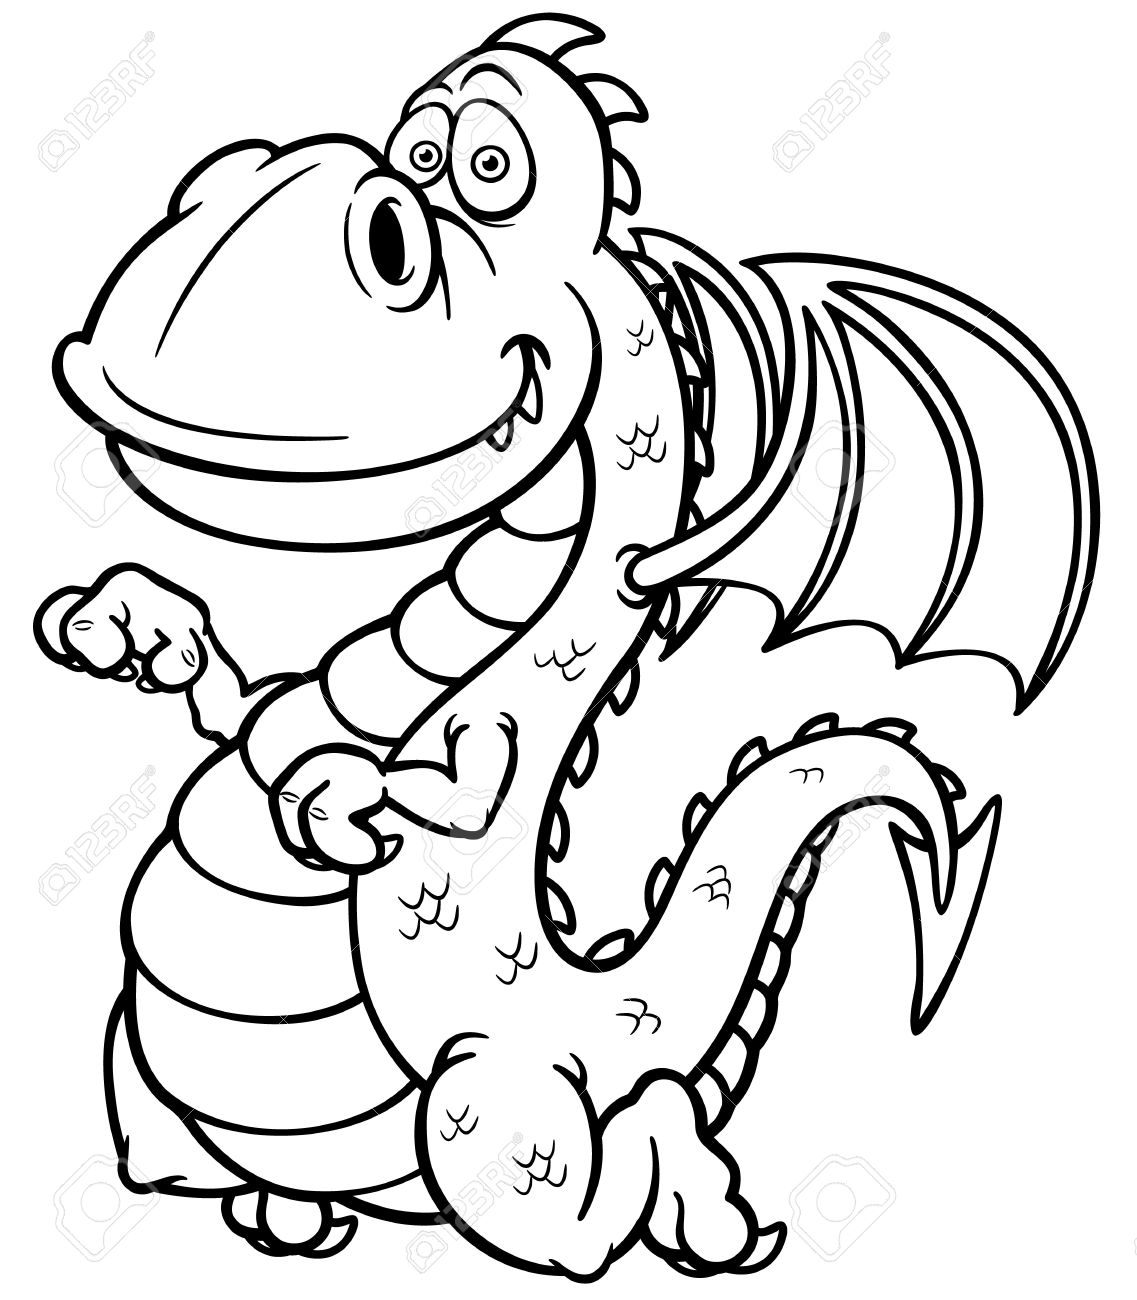 Vector Illustration Of Cartoon Dragon - Coloring Book Royalty Free ...